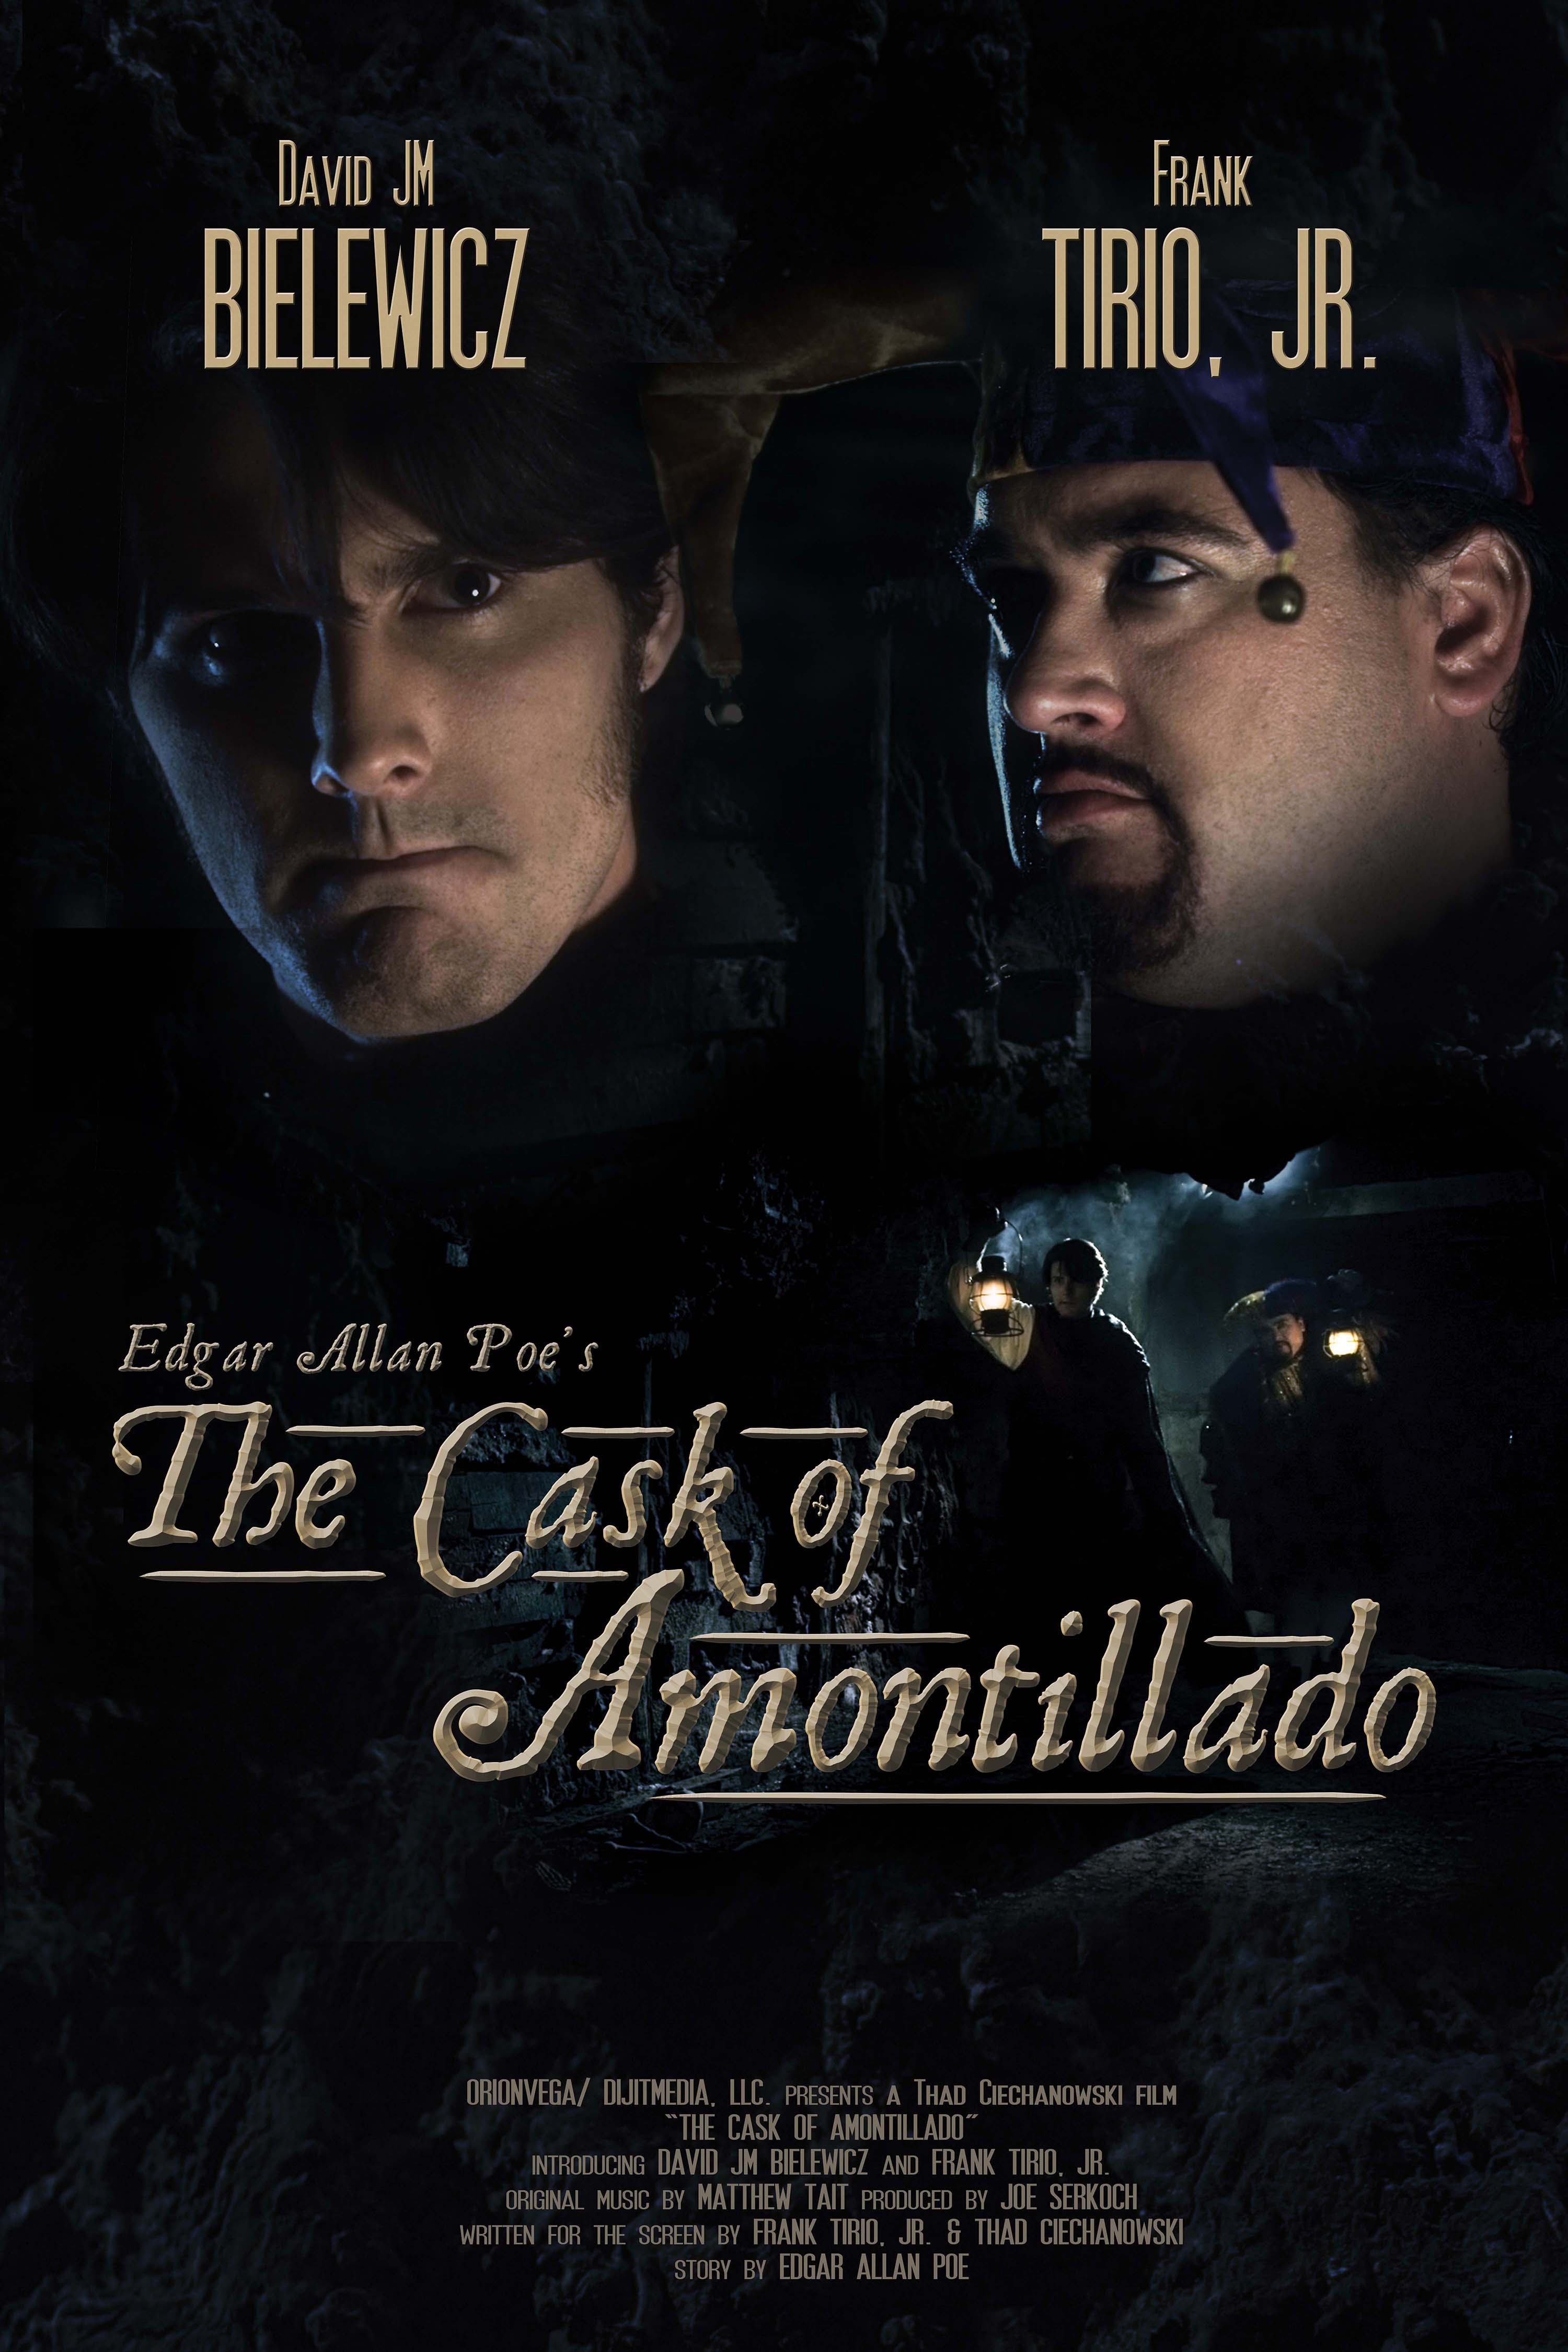 cask of amontillado literary analysis essay Analysis of the cask of amontillado by edgar allen poe essaysa cold dish: the cask of amontillado the story of the cask of amontillado by edgar allen poe is full of conflict from.